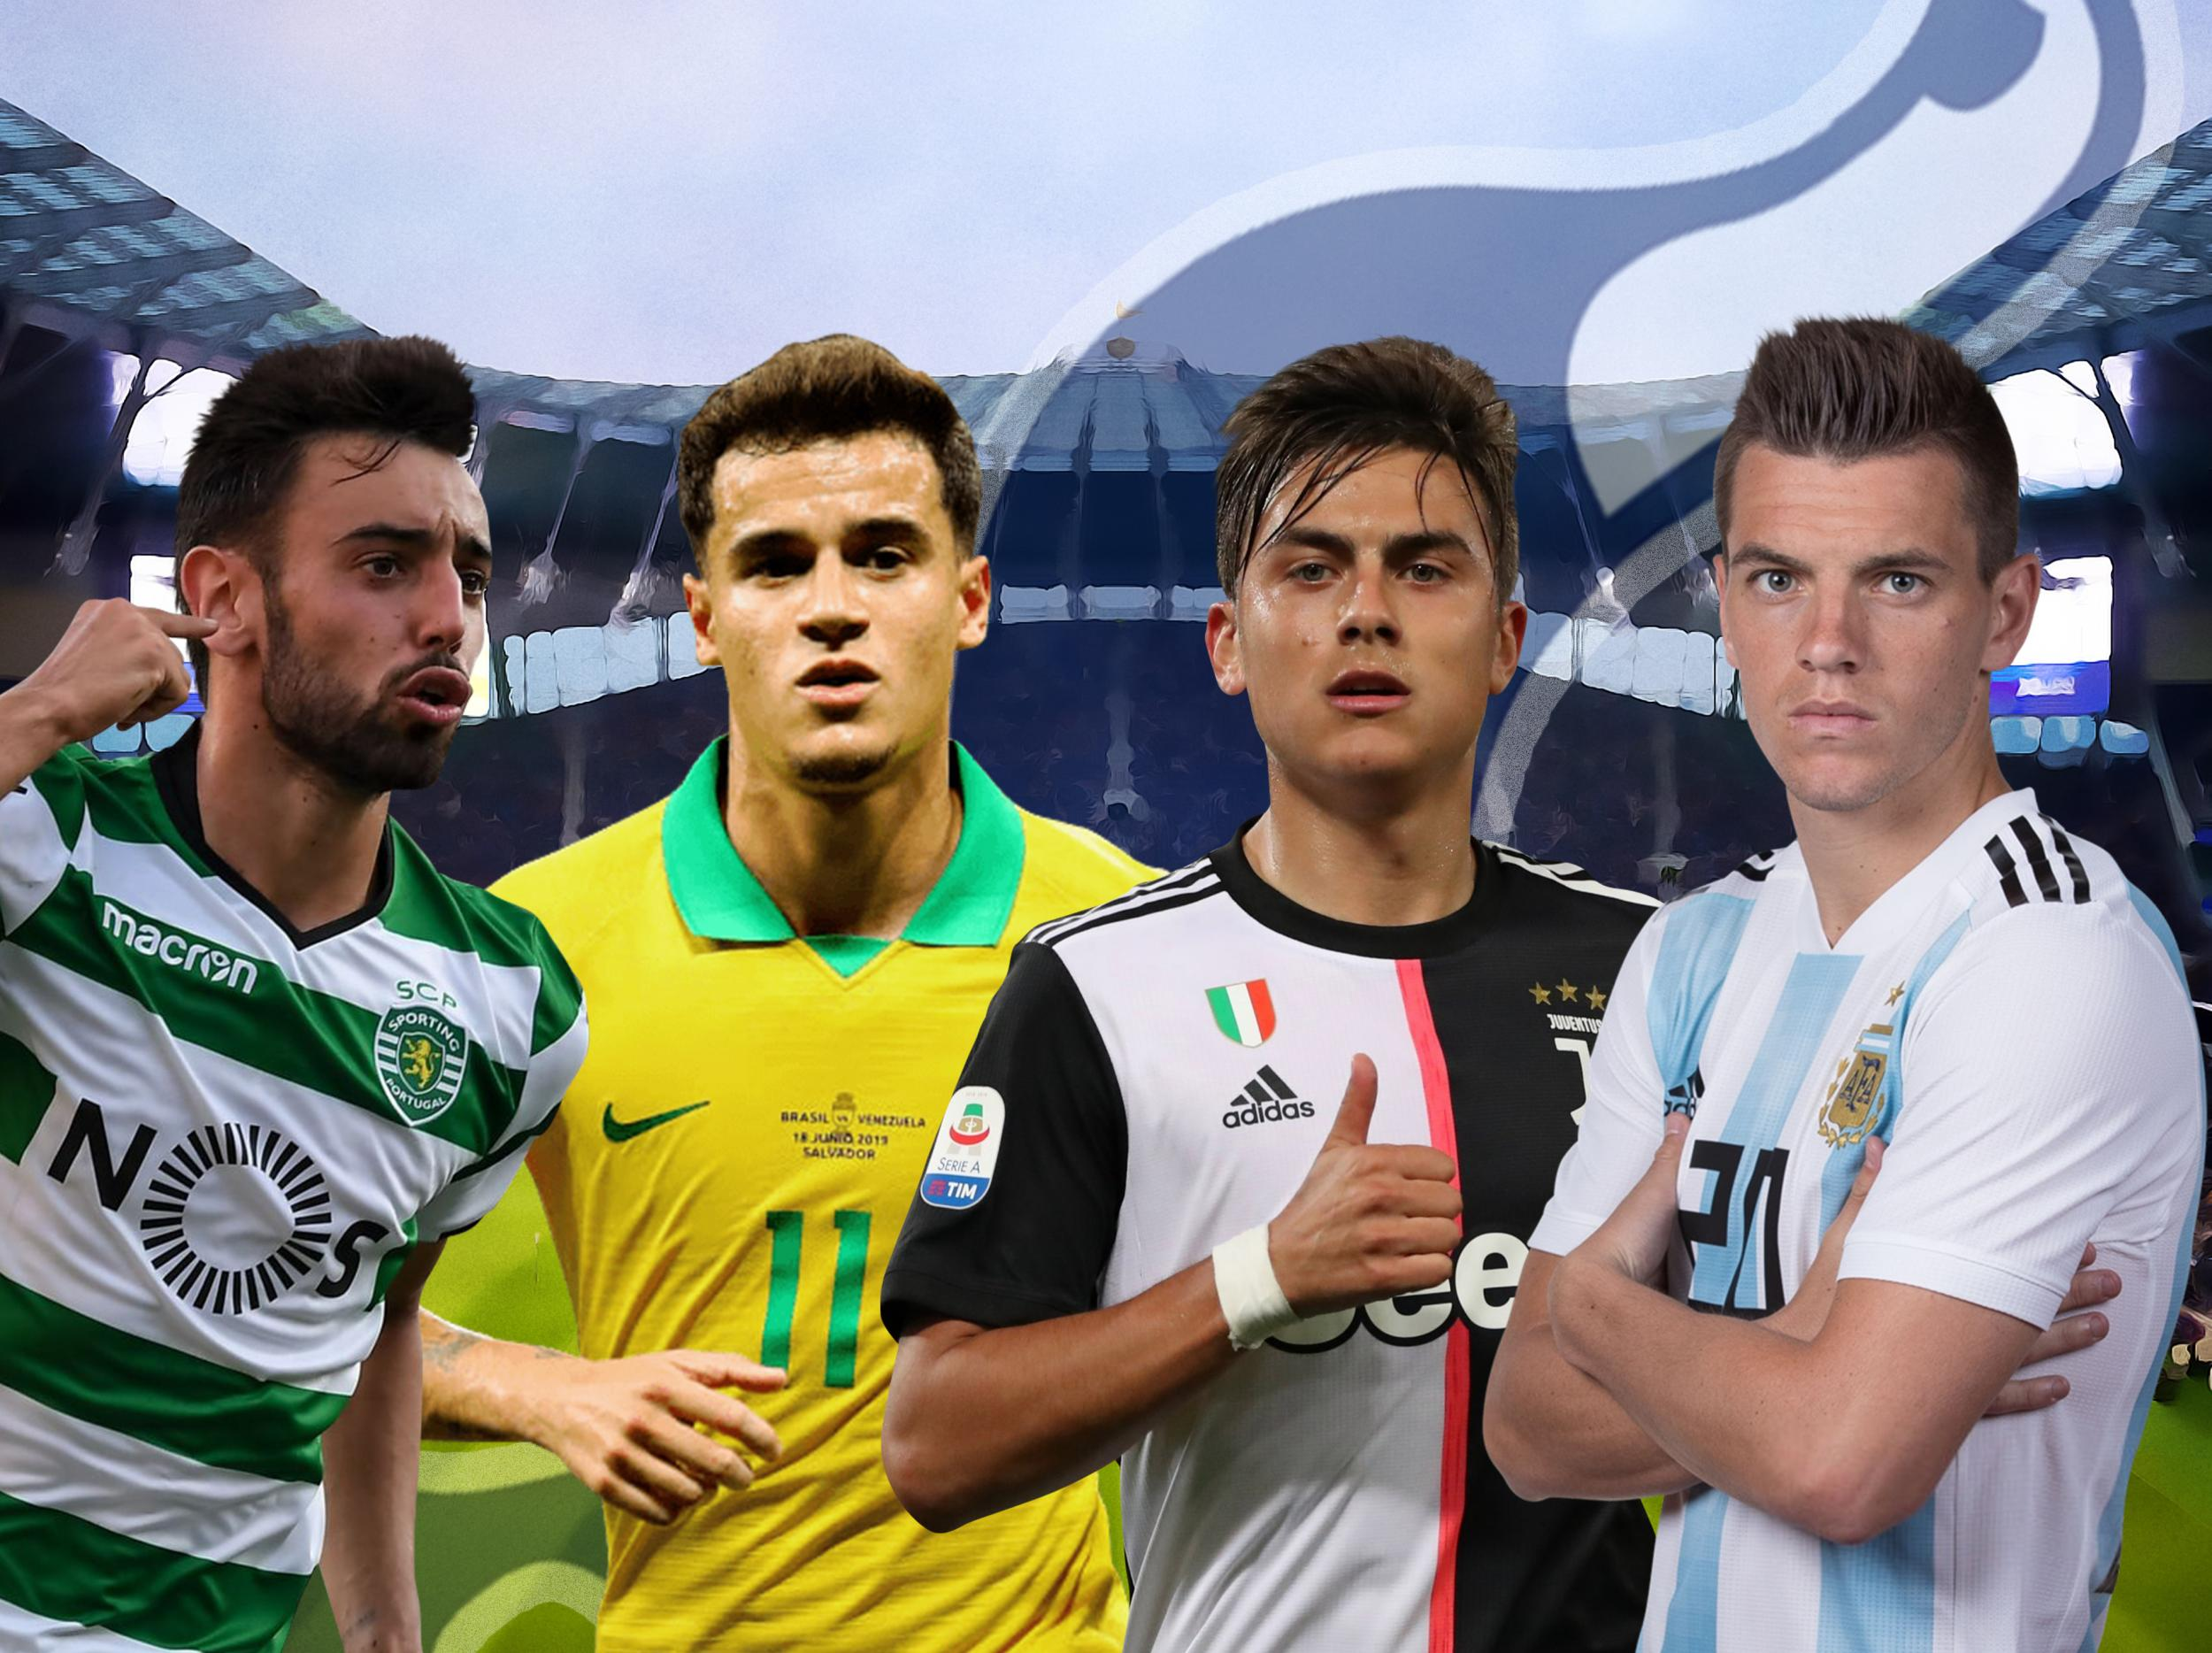 Tottenham transfer news: Deadline day latest on Paulo Dybala, Giovani Lo Celso, Philippe Coutinho and more